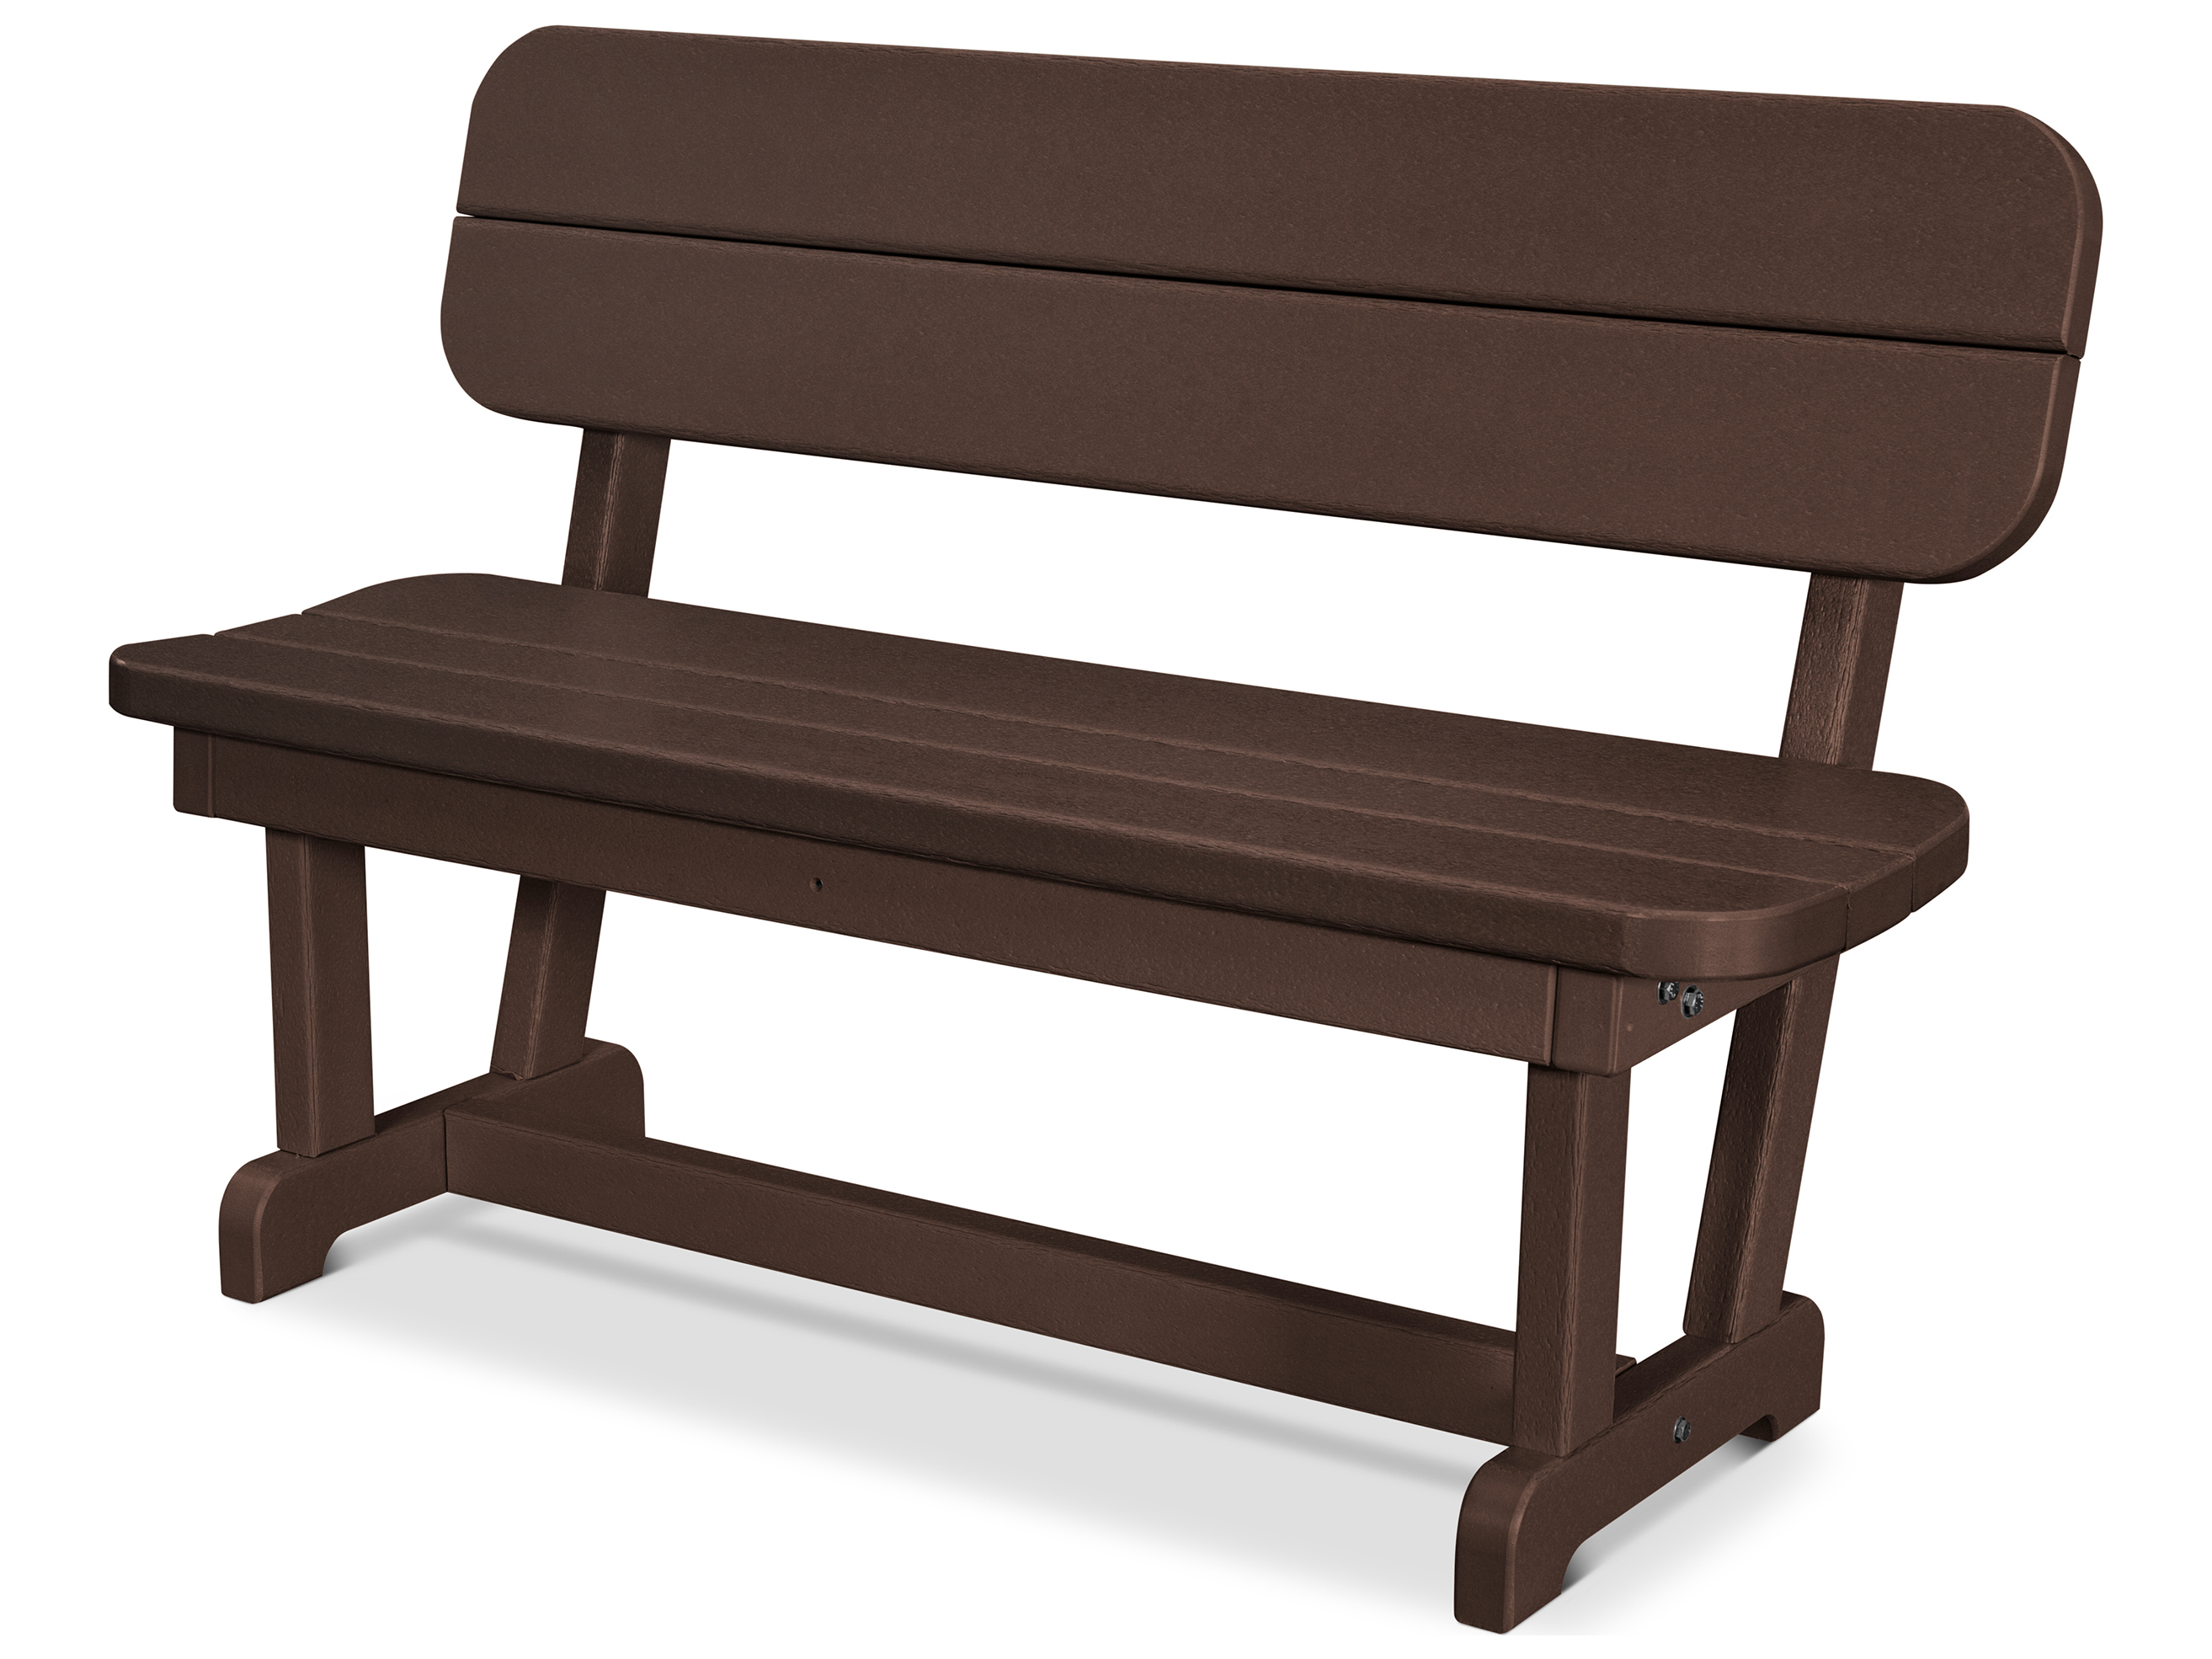 Polywood Park Recycled Plastic 48 Bench Pb48: polywood bench